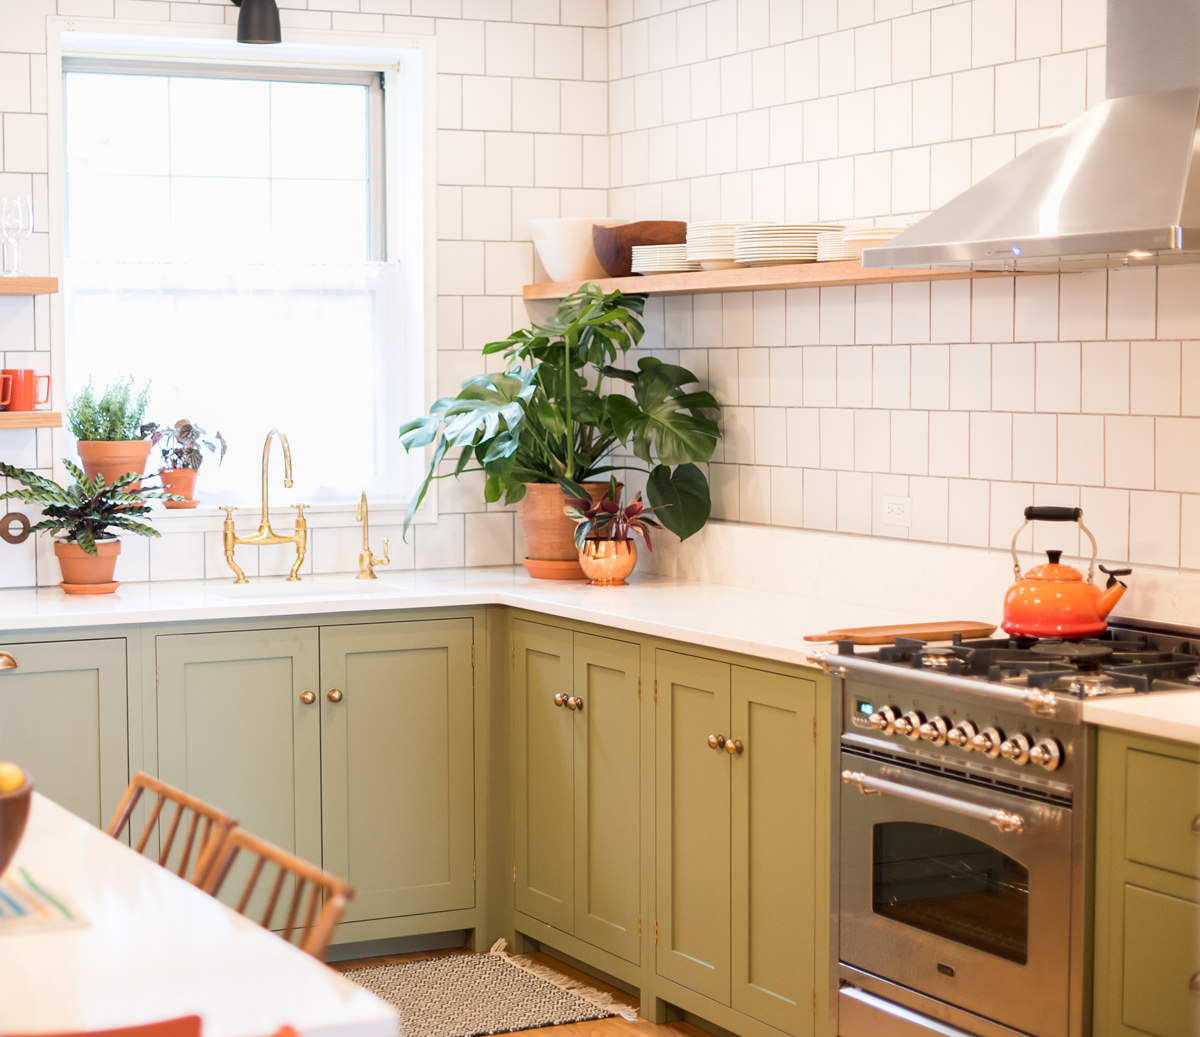 A Village Green Devol Kitchen In Brooklyn New York The Devol